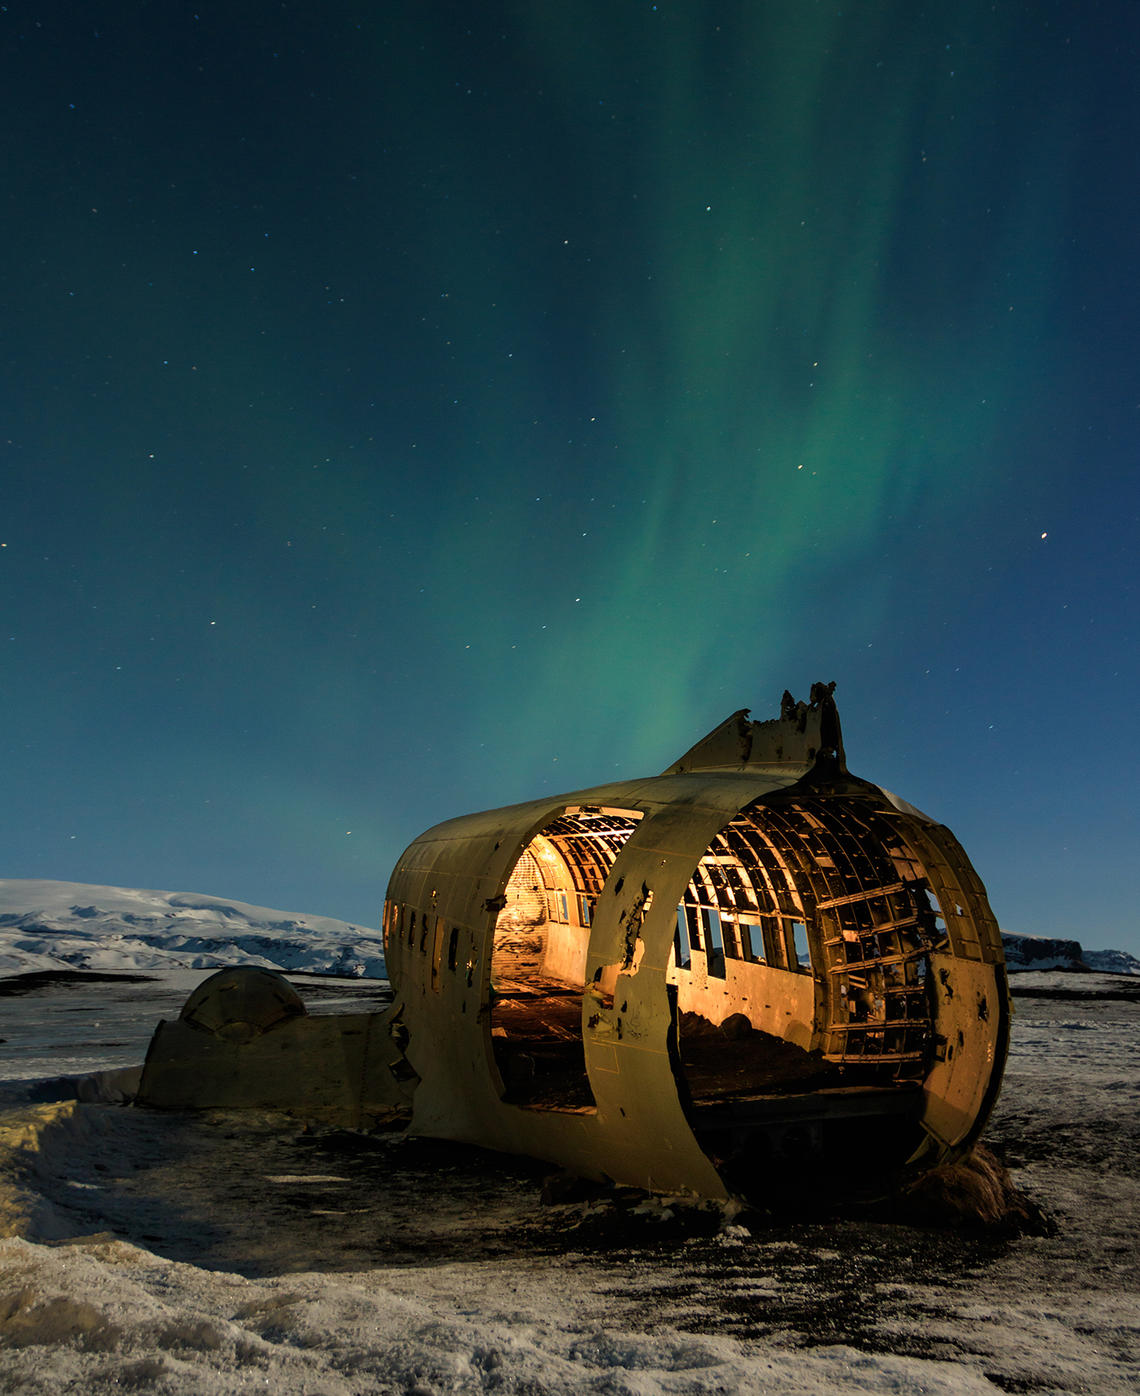 Image taken by student of Northern Lights in Norway over a cabin